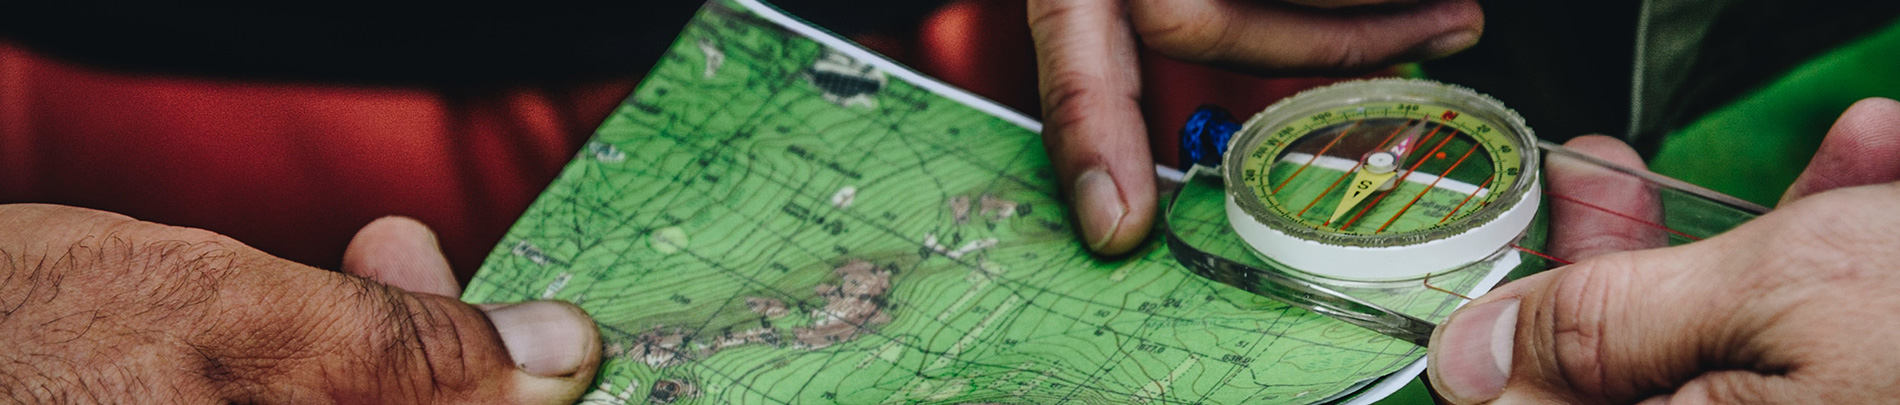 Hands hold a topographic map and compass.